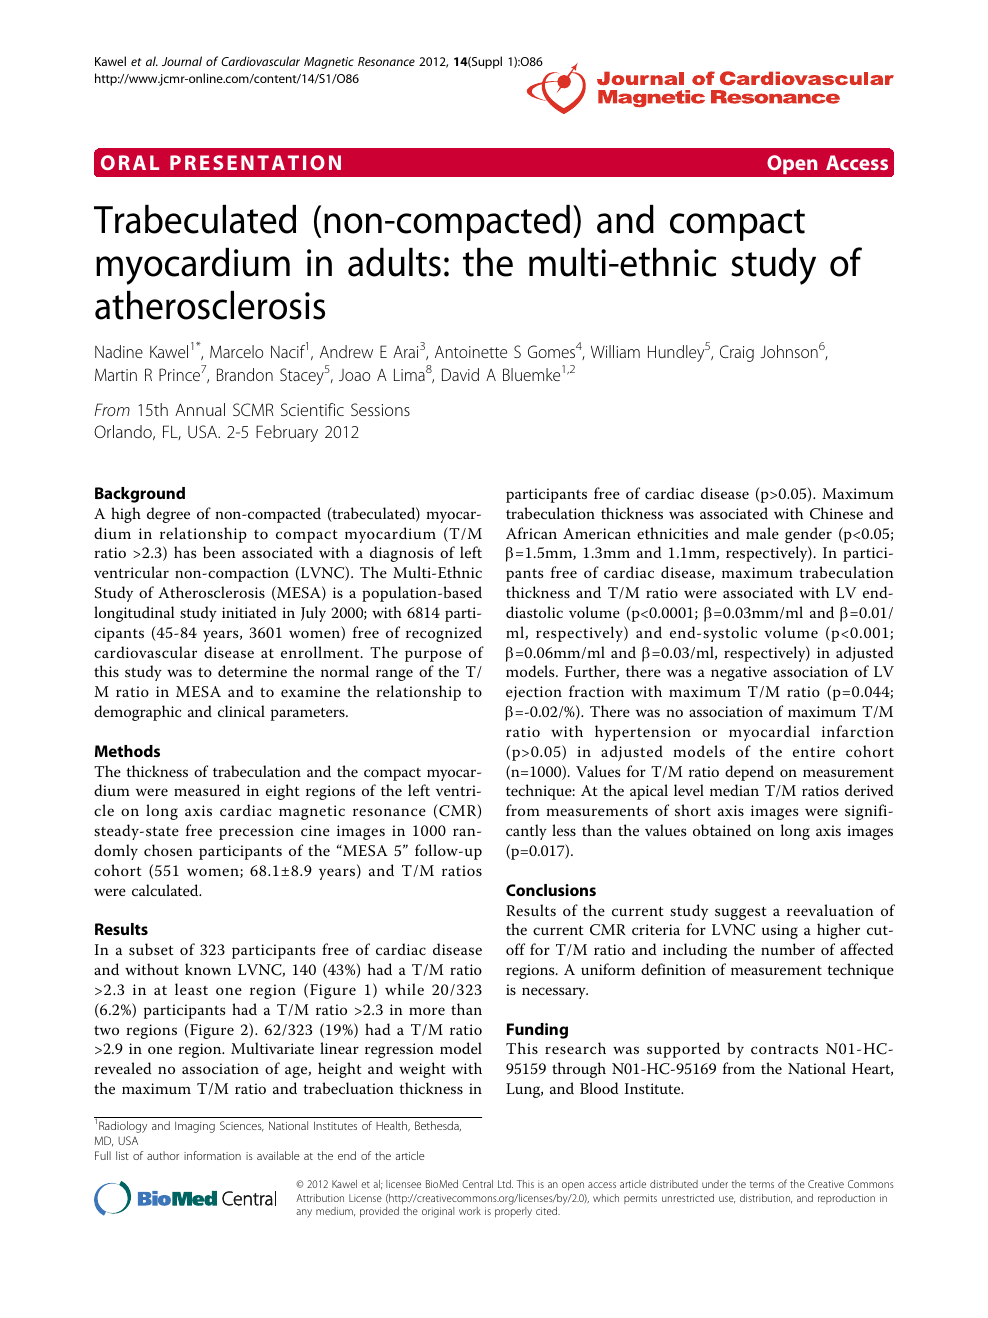 Trabeculated (non-compacted) and compact myocardium in